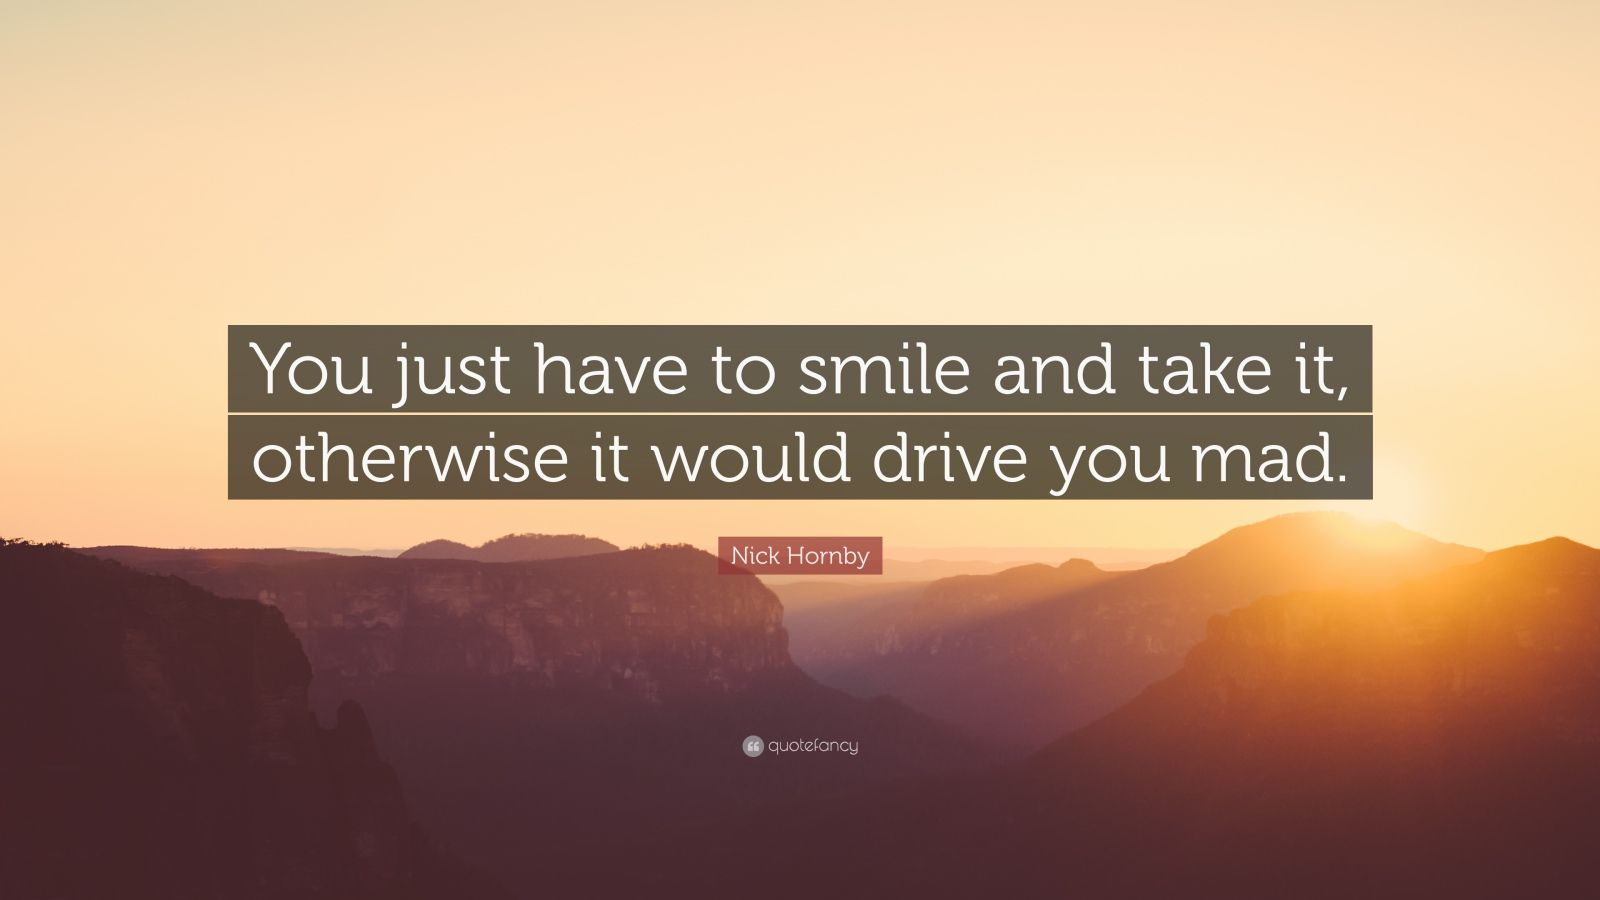 """Nick Hornby Quote: """"You just have to smile and take it, otherwise it would drive you mad."""""""